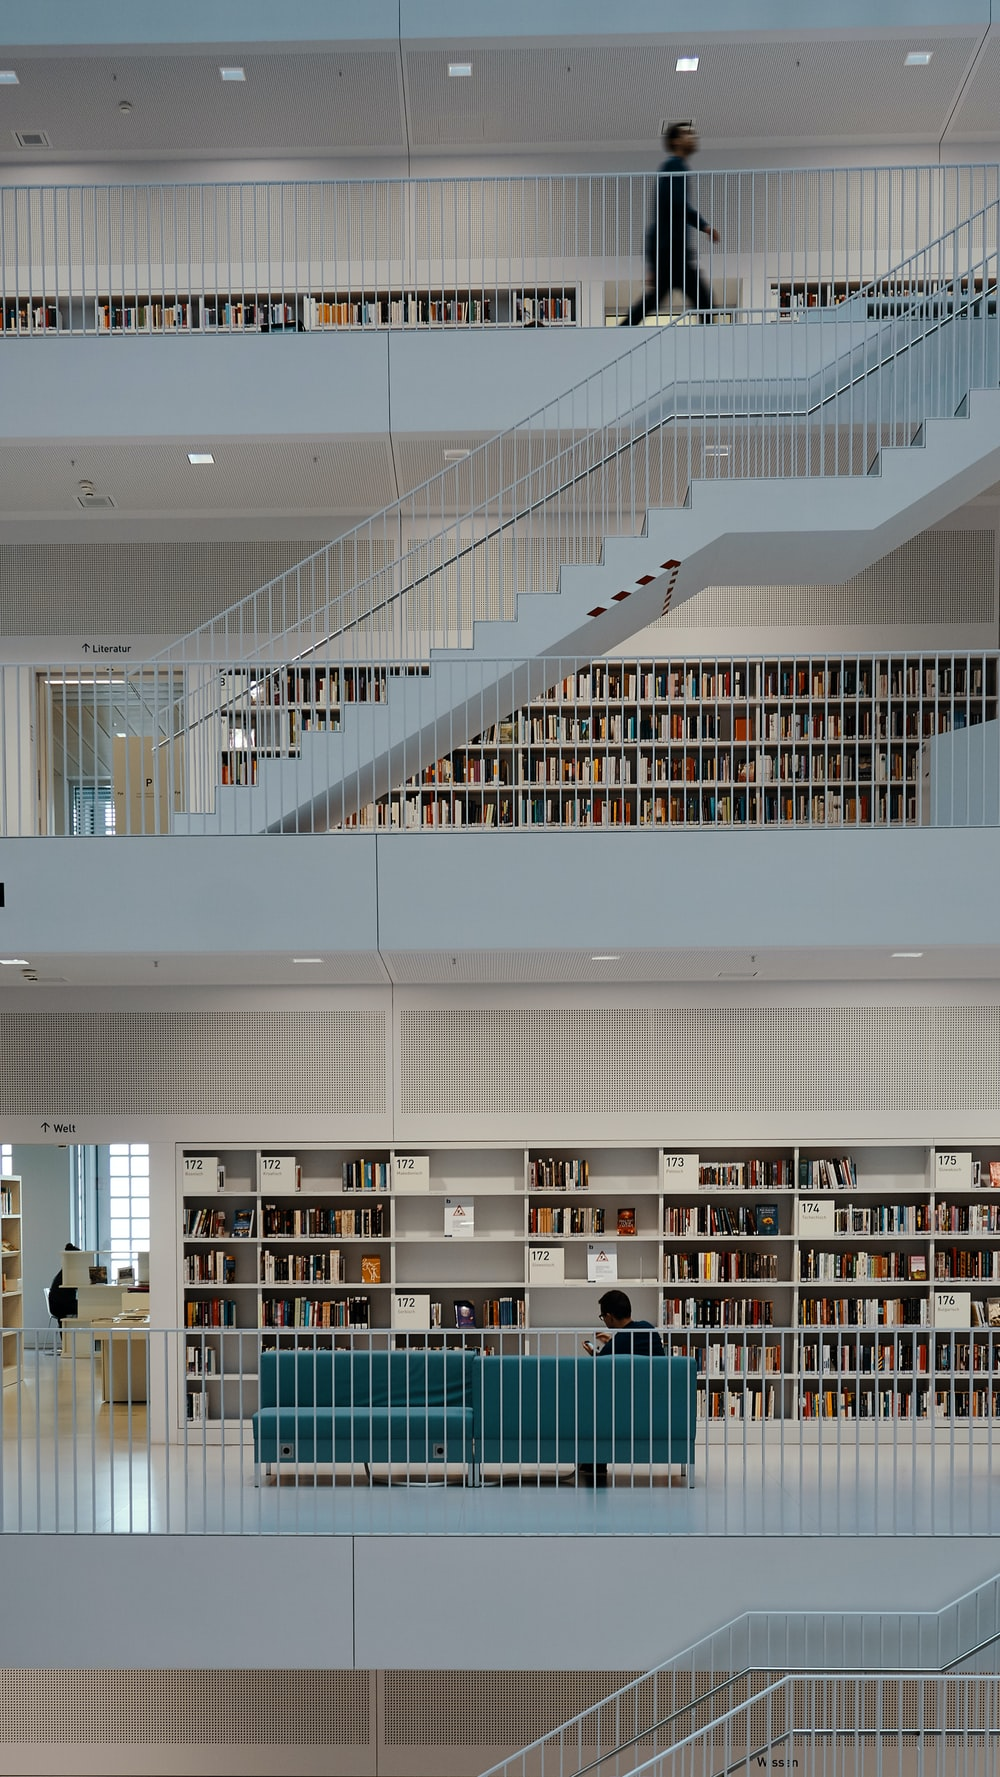 man walking on library